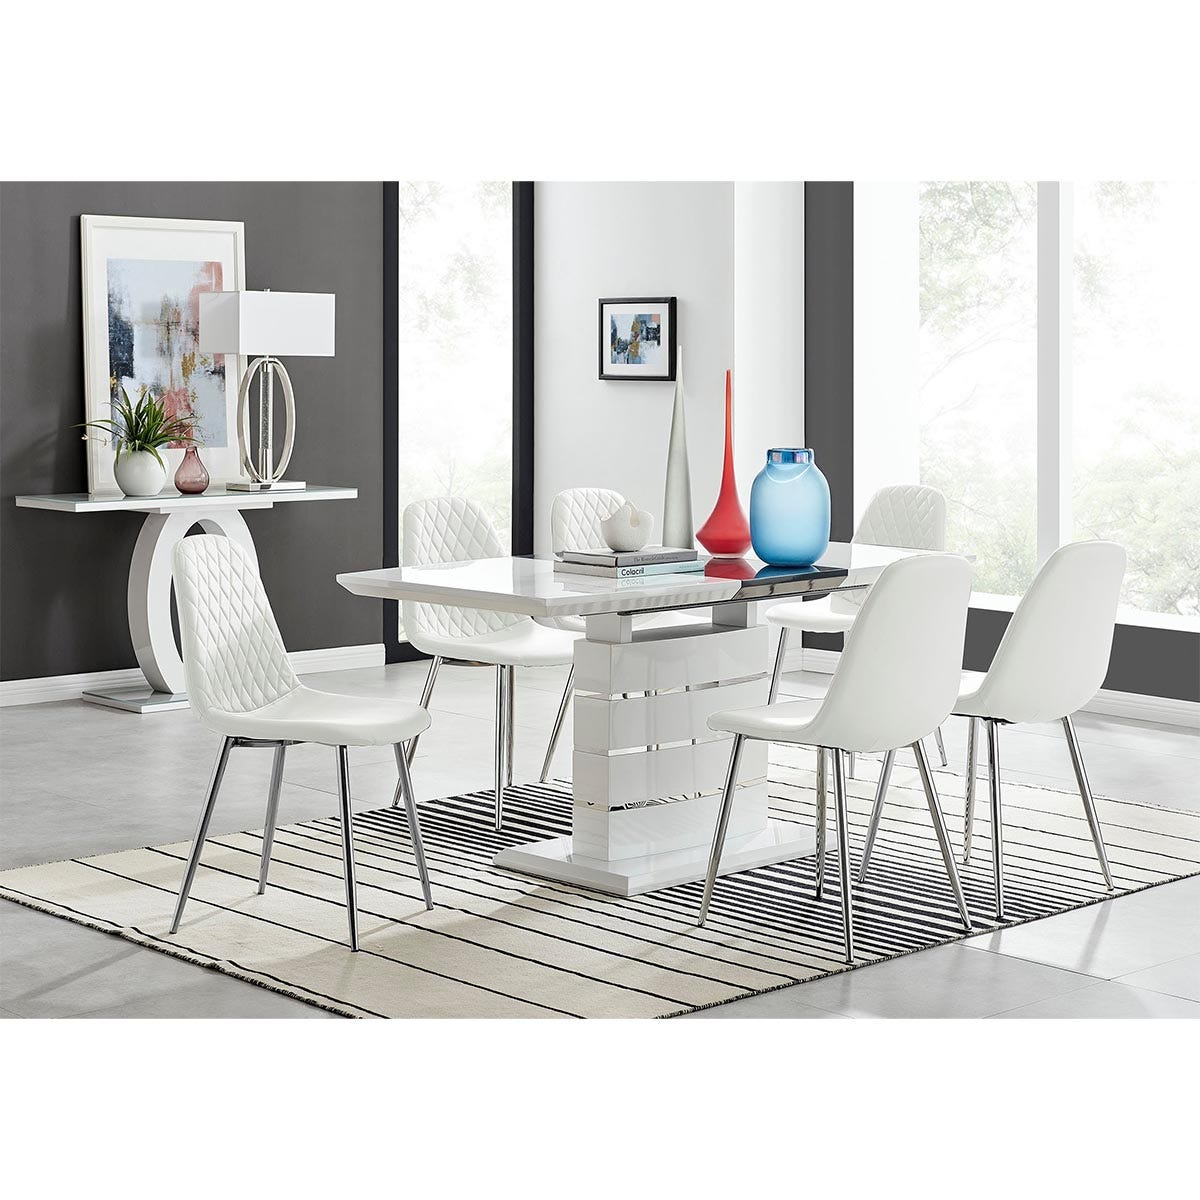 Furniture Box Renato 120cm High Gloss Extending Dining Table and 6 White Corona Silver Leg Chairs